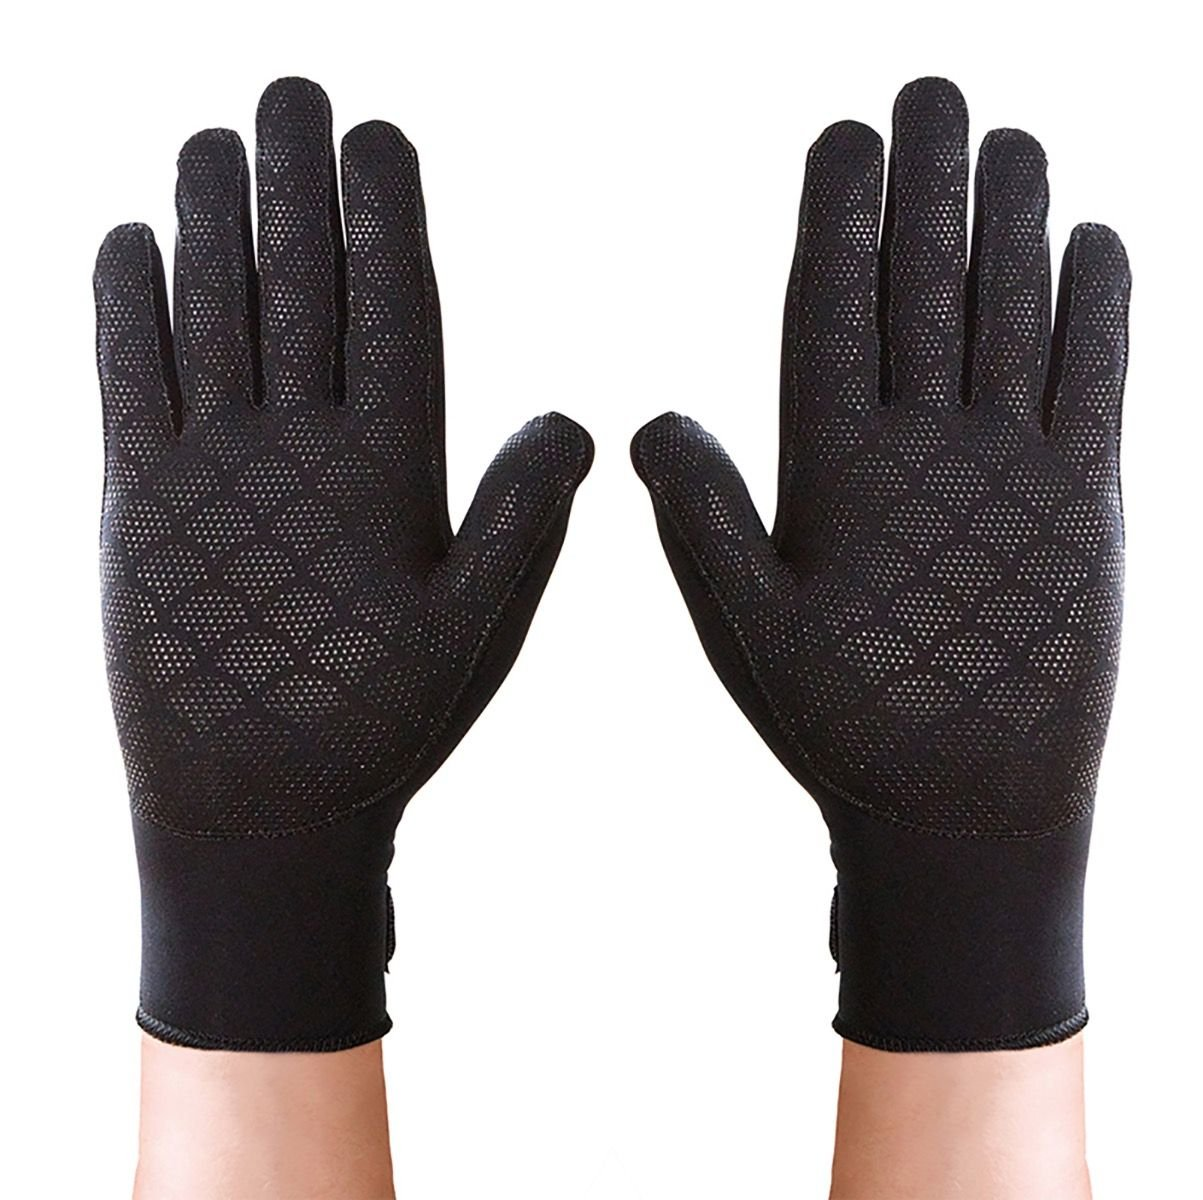 THERMOSKIN Gloves, Pair, XX-LG